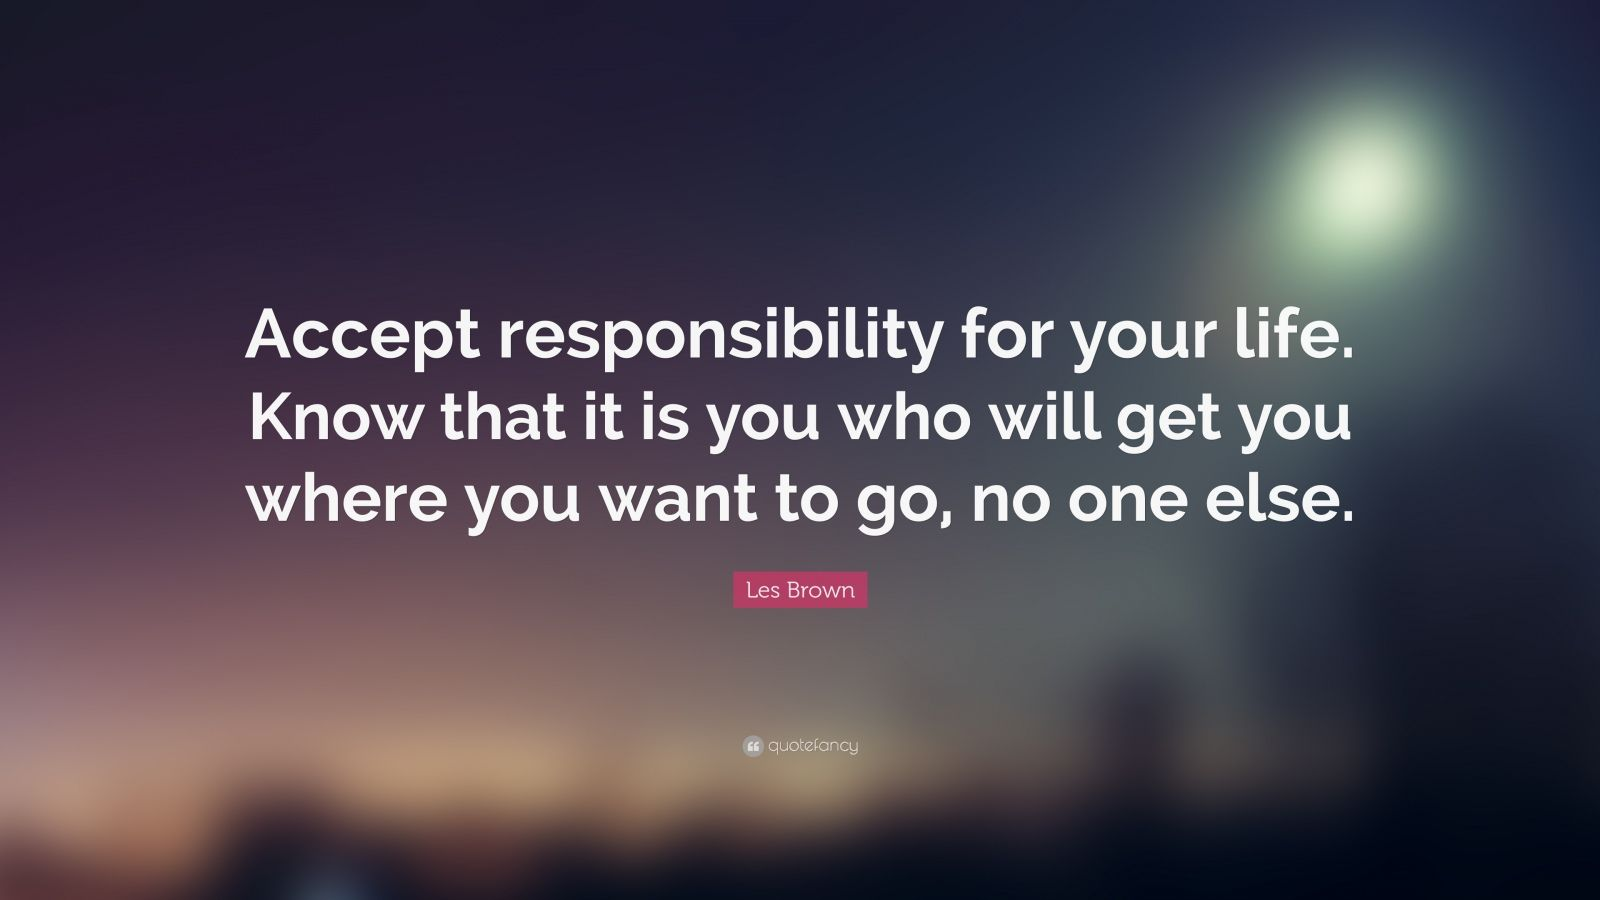 Courage Wallpapers Quotes Les Brown Quote Accept Responsibility For Your Life